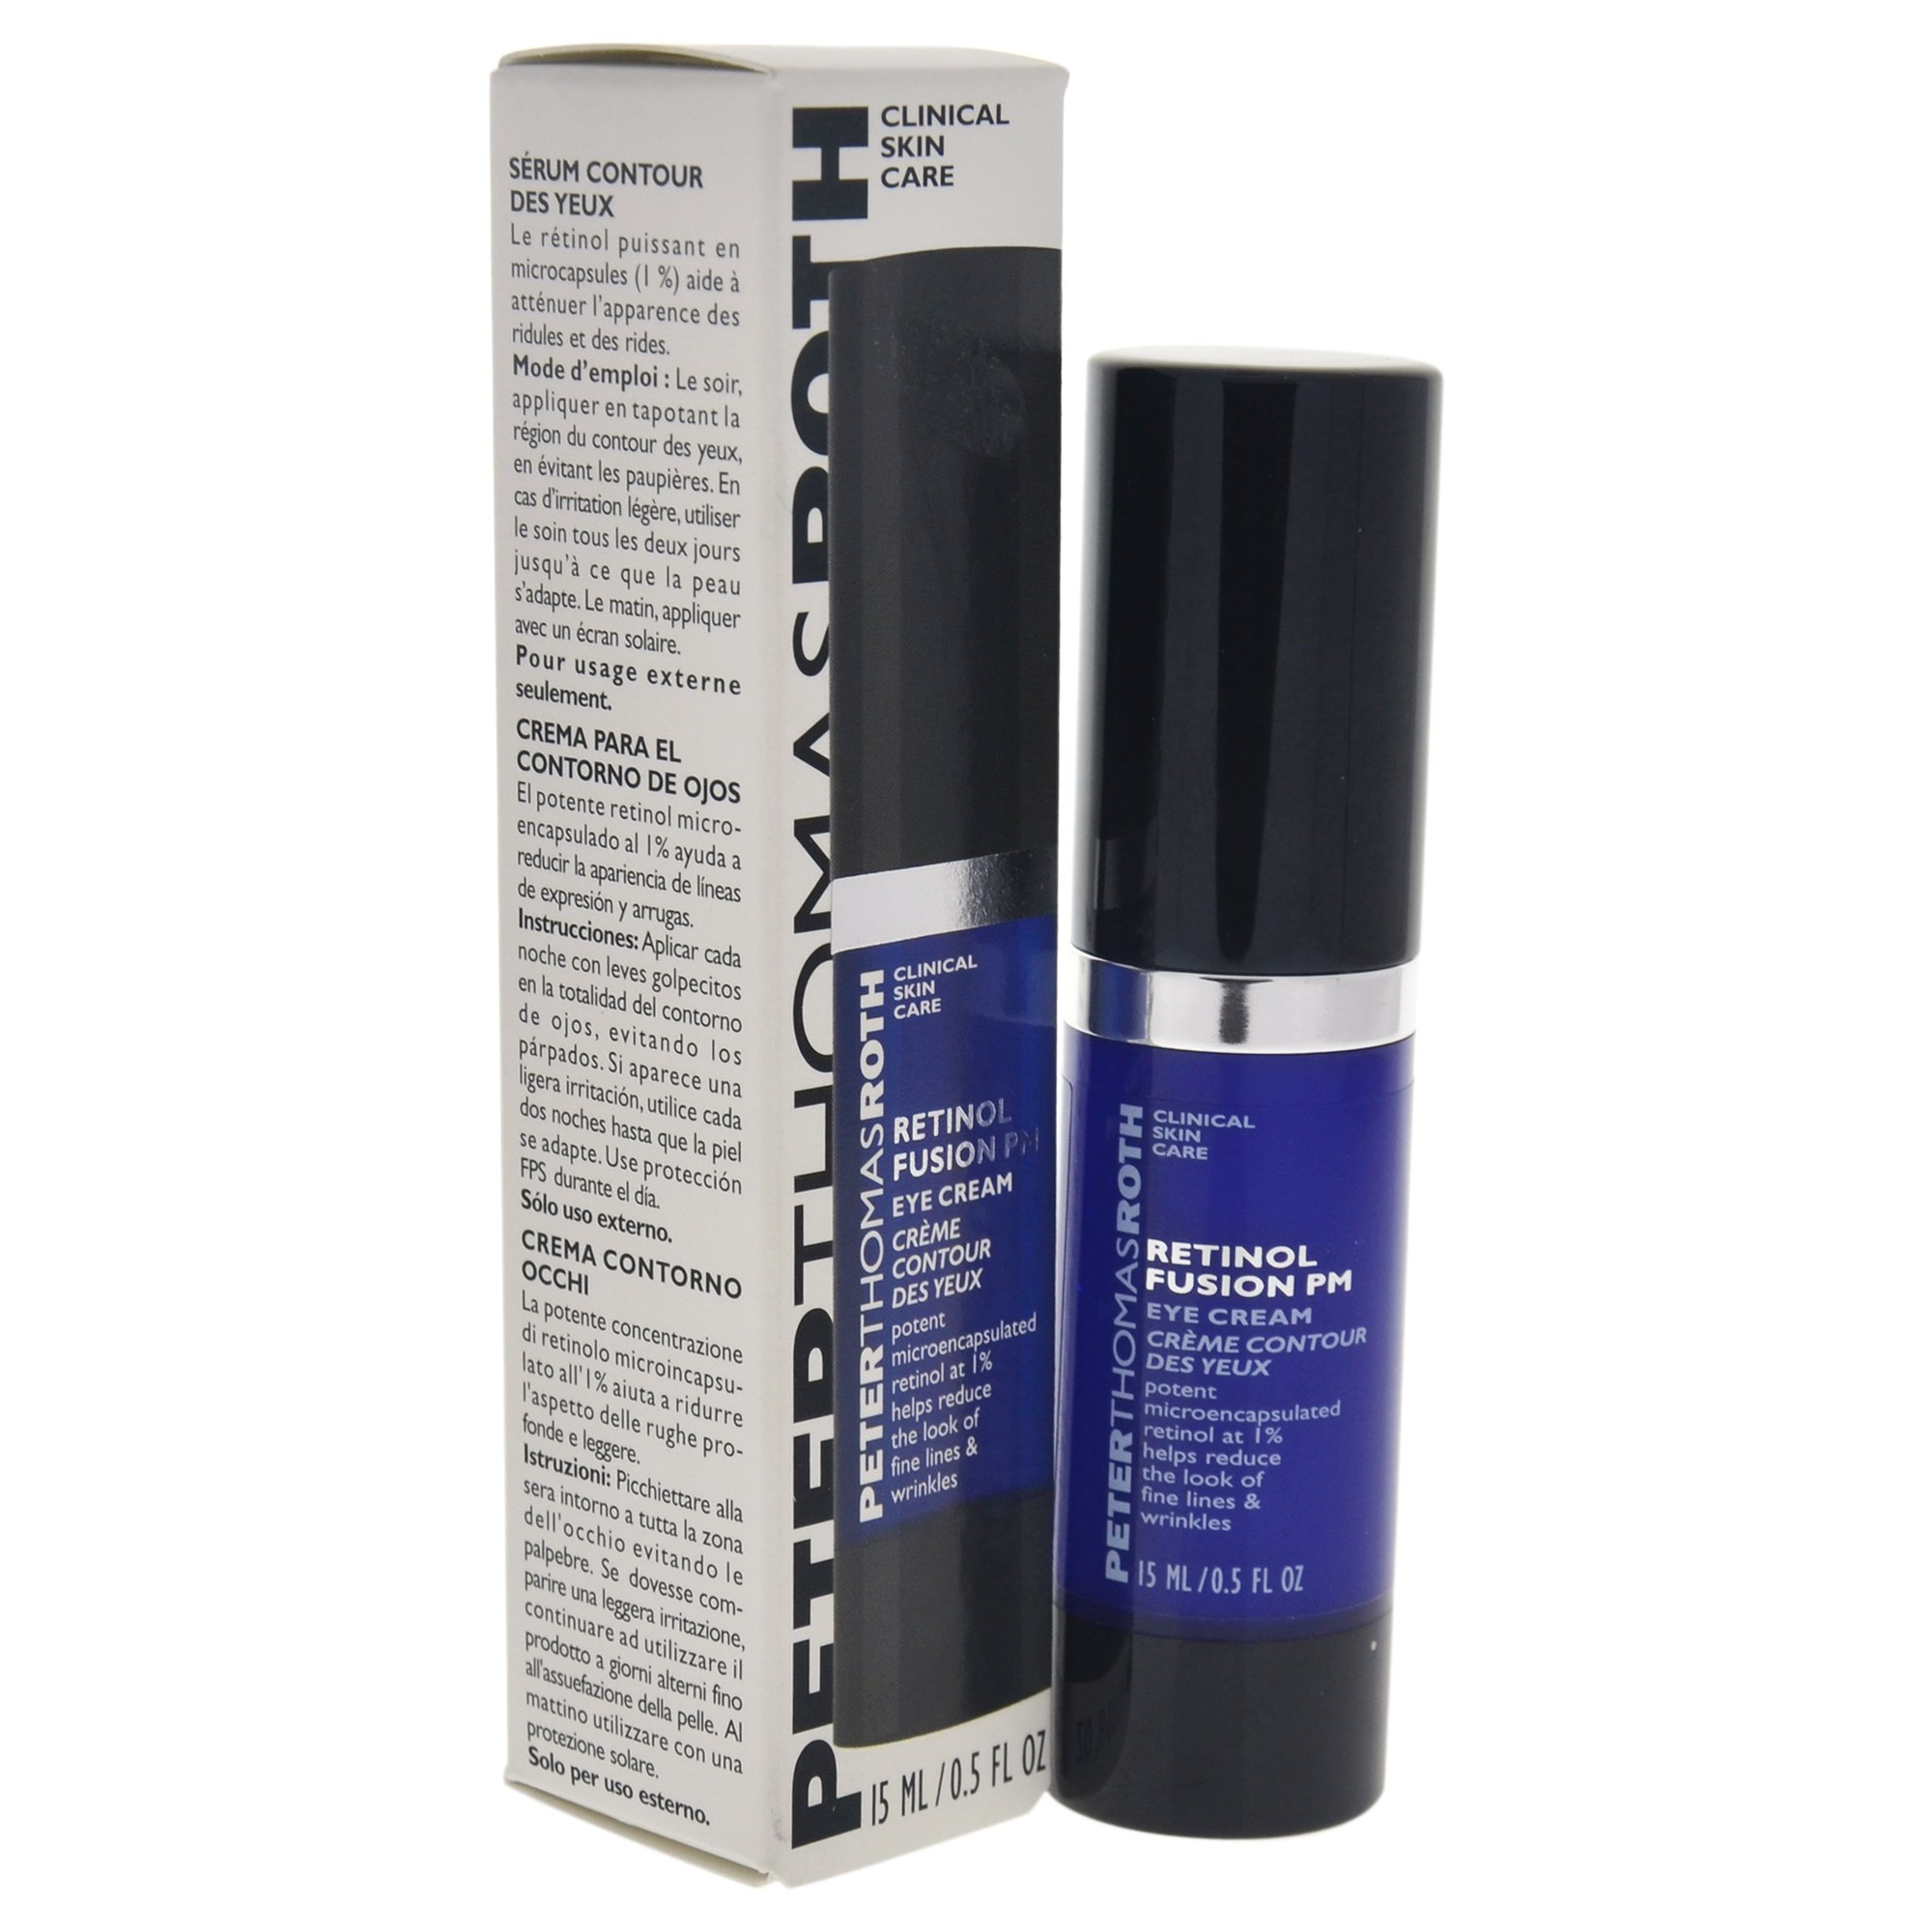 Peter Thomas Roth Retinol Fusion PM 1 Fluid Ounce MEDIHEAL Circle Point Golden Chip Mask (Brightening and Anti-Wrinkle)